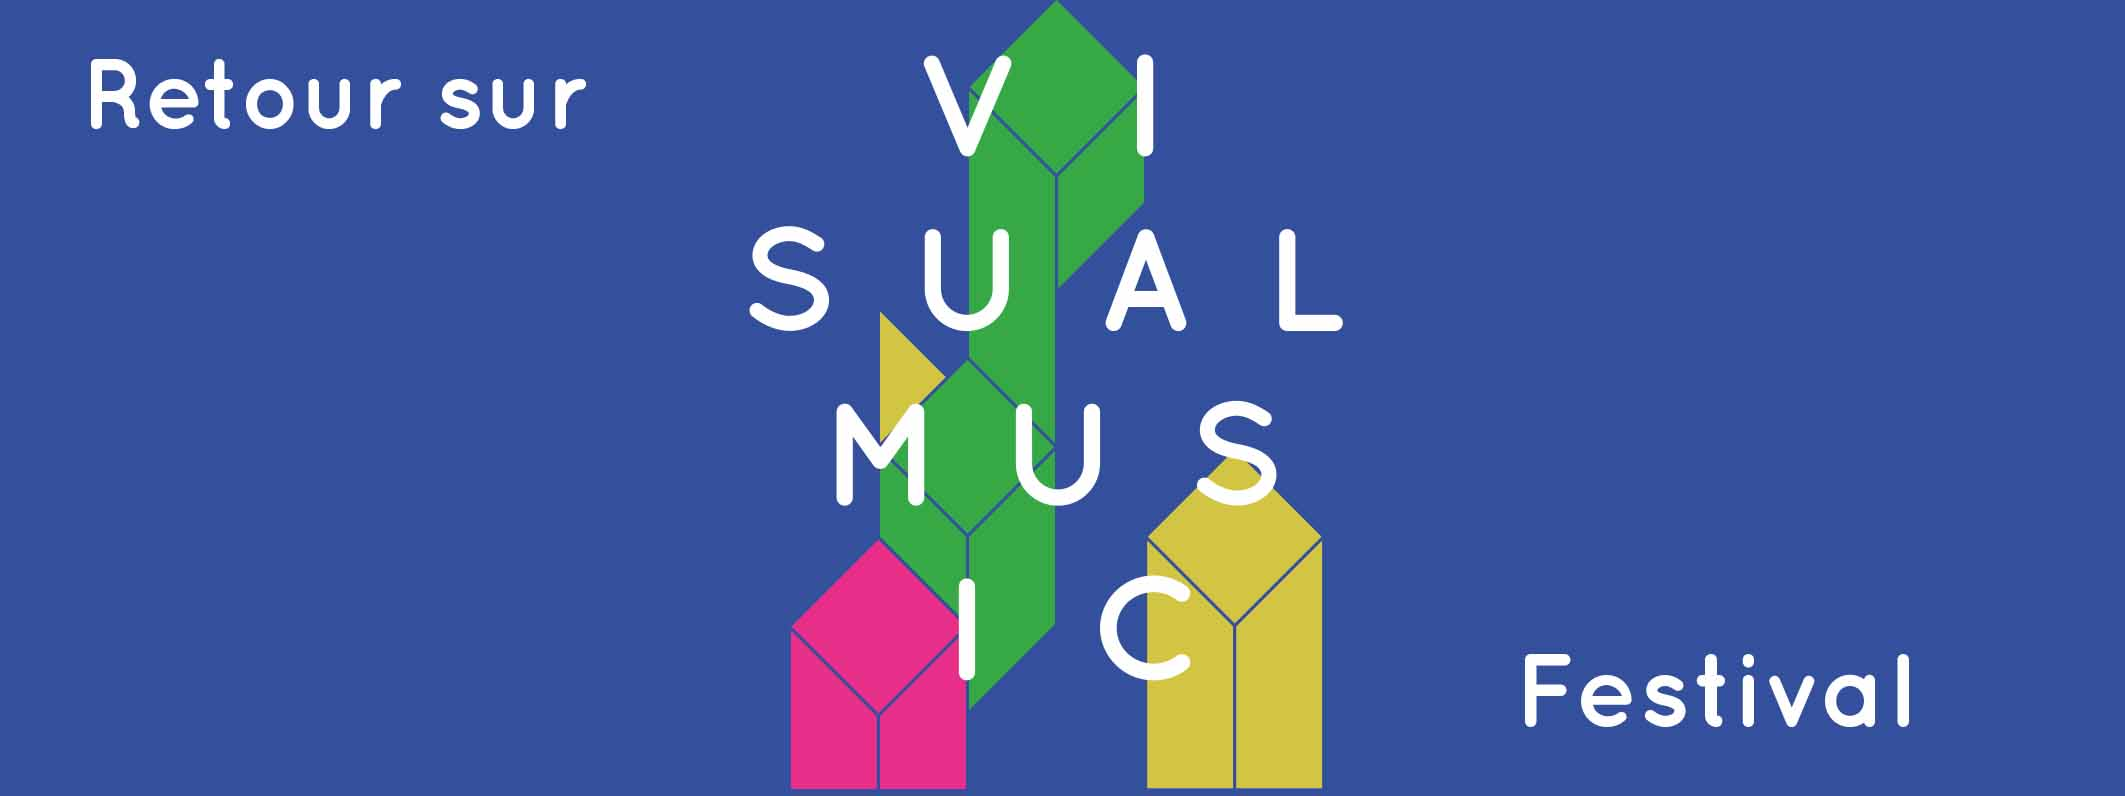 Retour sur Visual Music Festival